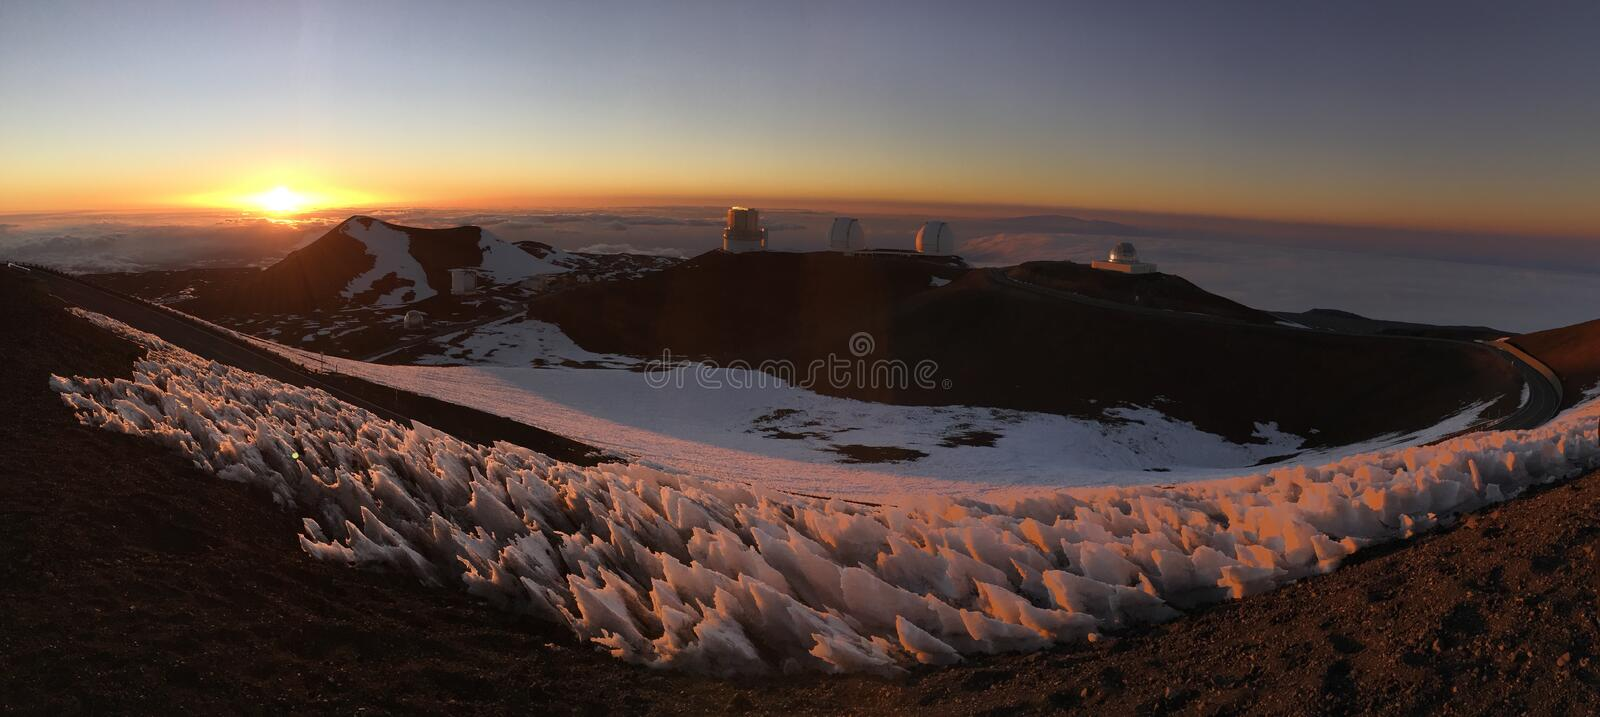 Snowy Hawaiian Sunset above the Clouds royalty free stock photos